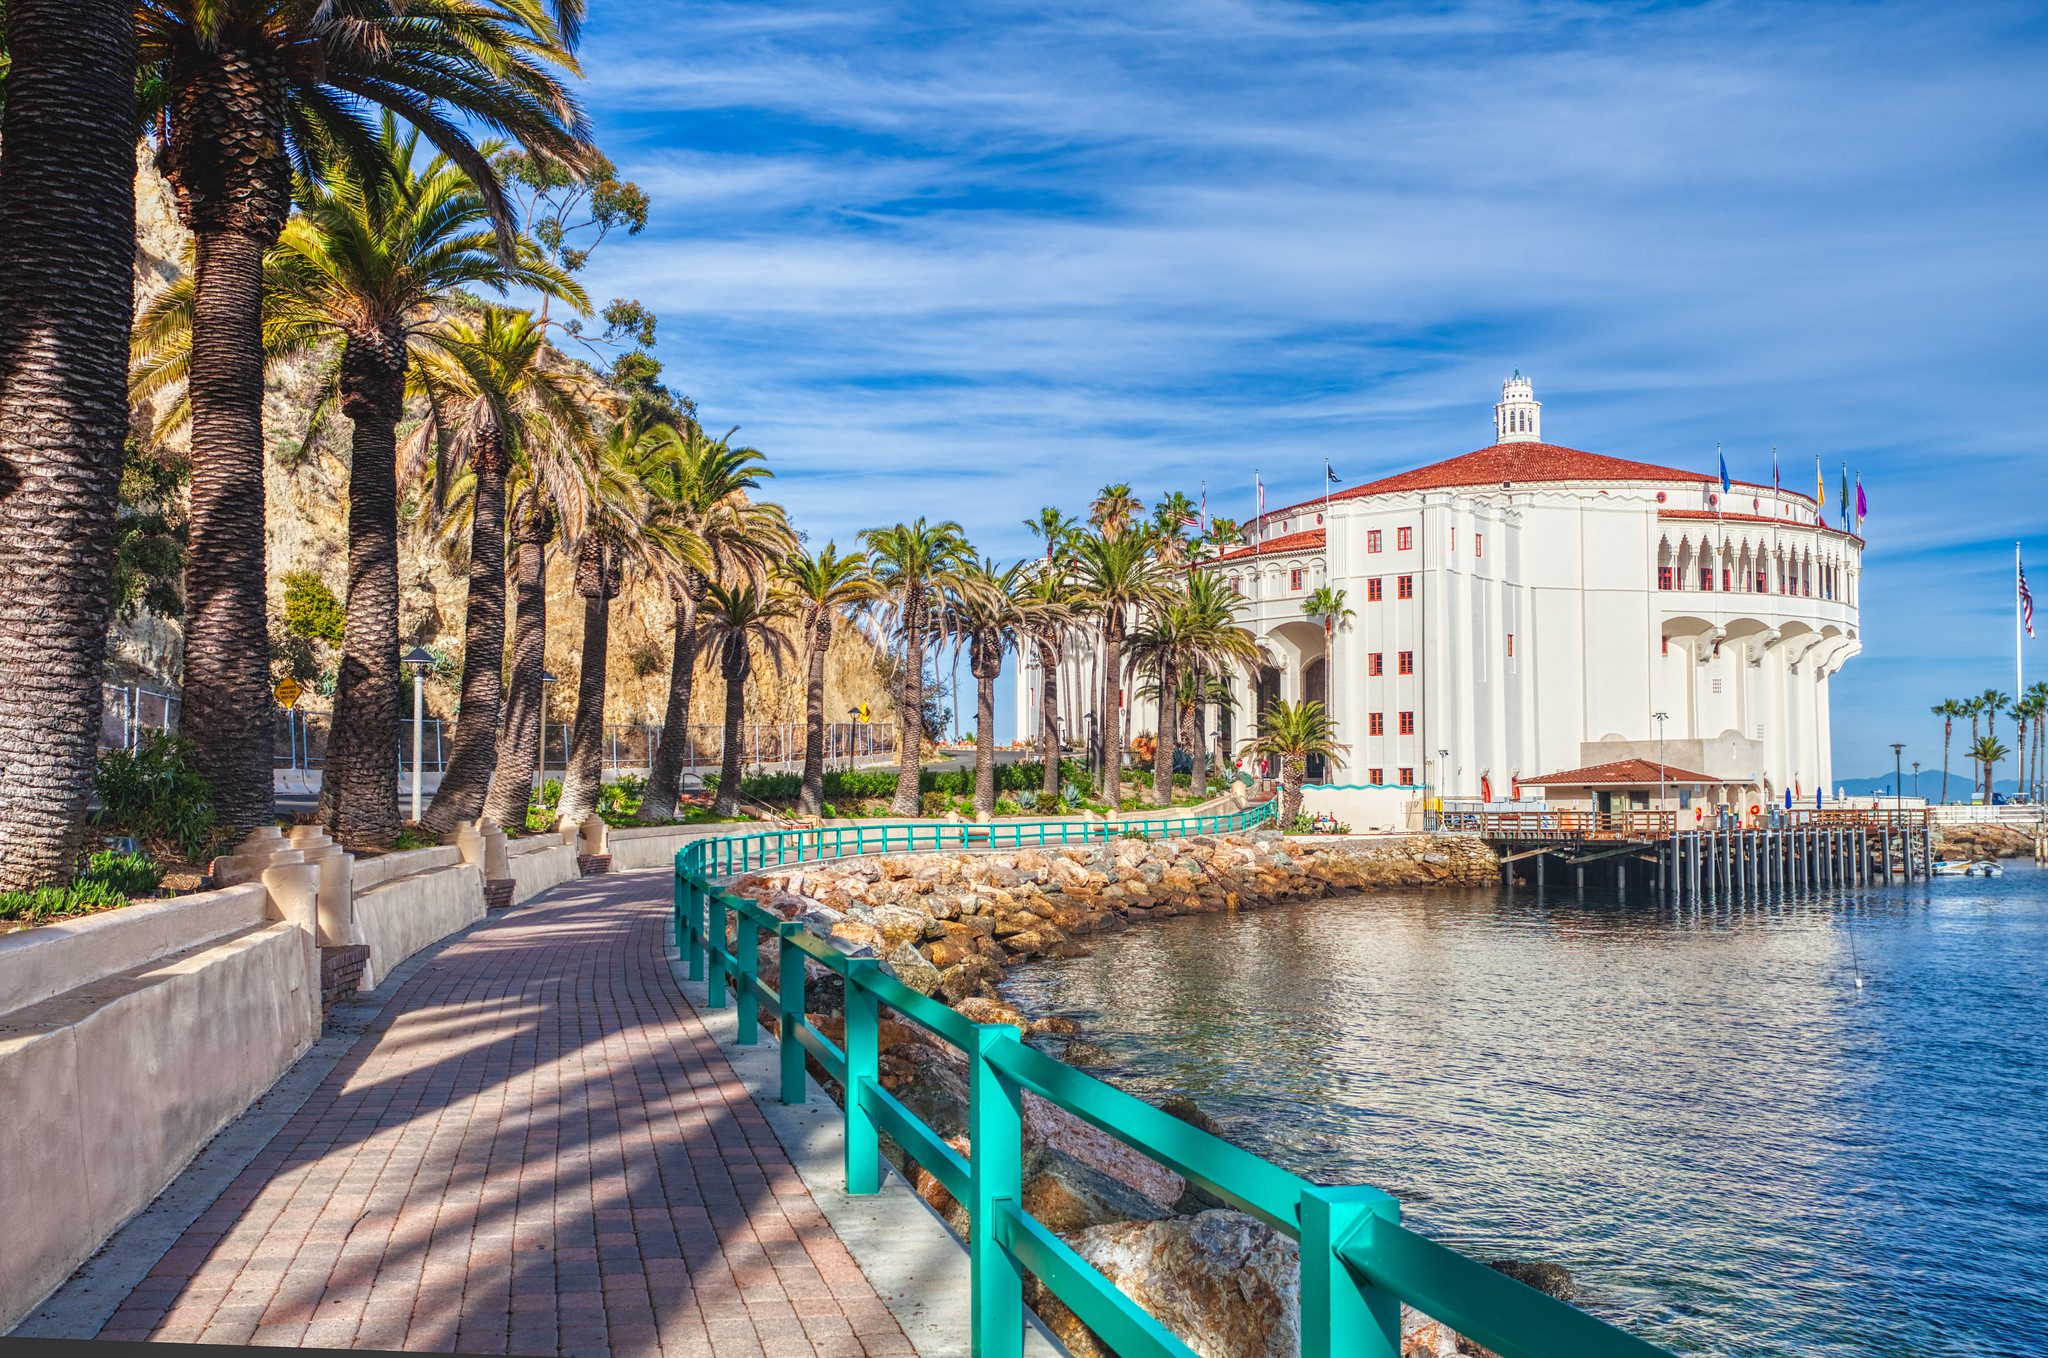 Catalina Island: Best place to take photos in Avalon, CA